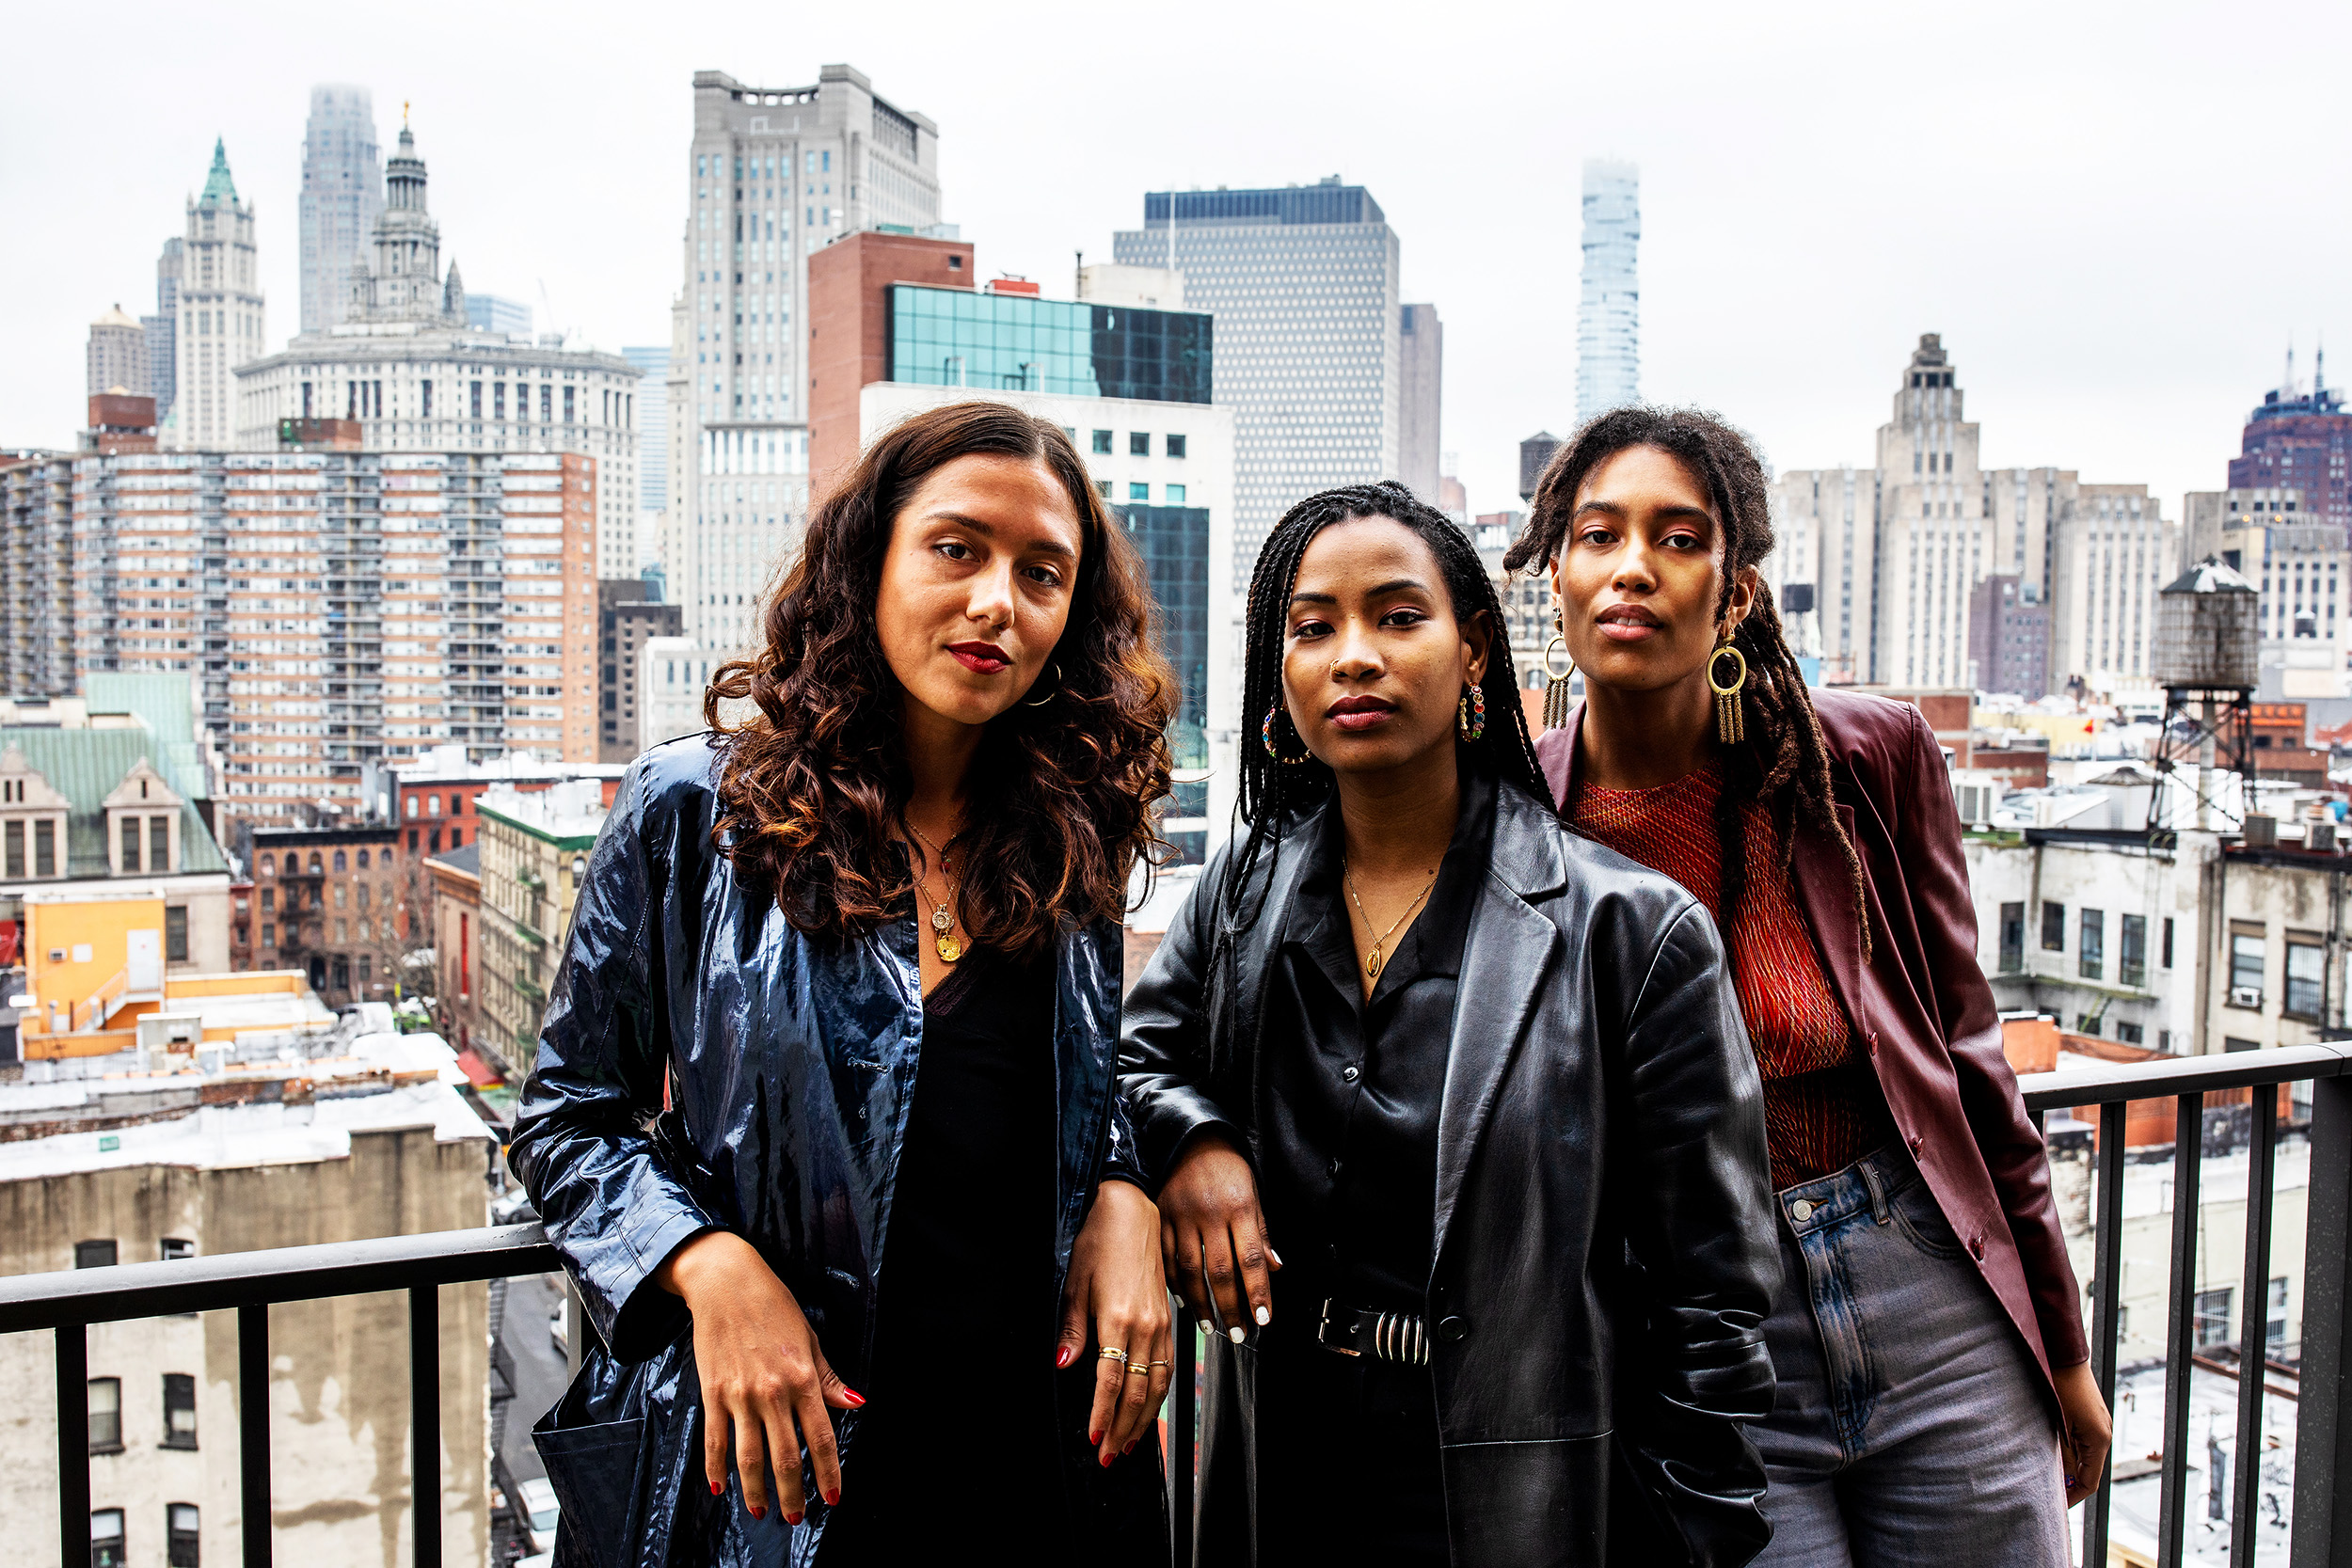 Left to right: Founders of CHROMA, June Canedo, Ladin Awad, and Sienna Fekete in Manhattan, New York. CHROMA is a cross-disciplinary creative studio with intentions to diversify creative industries.